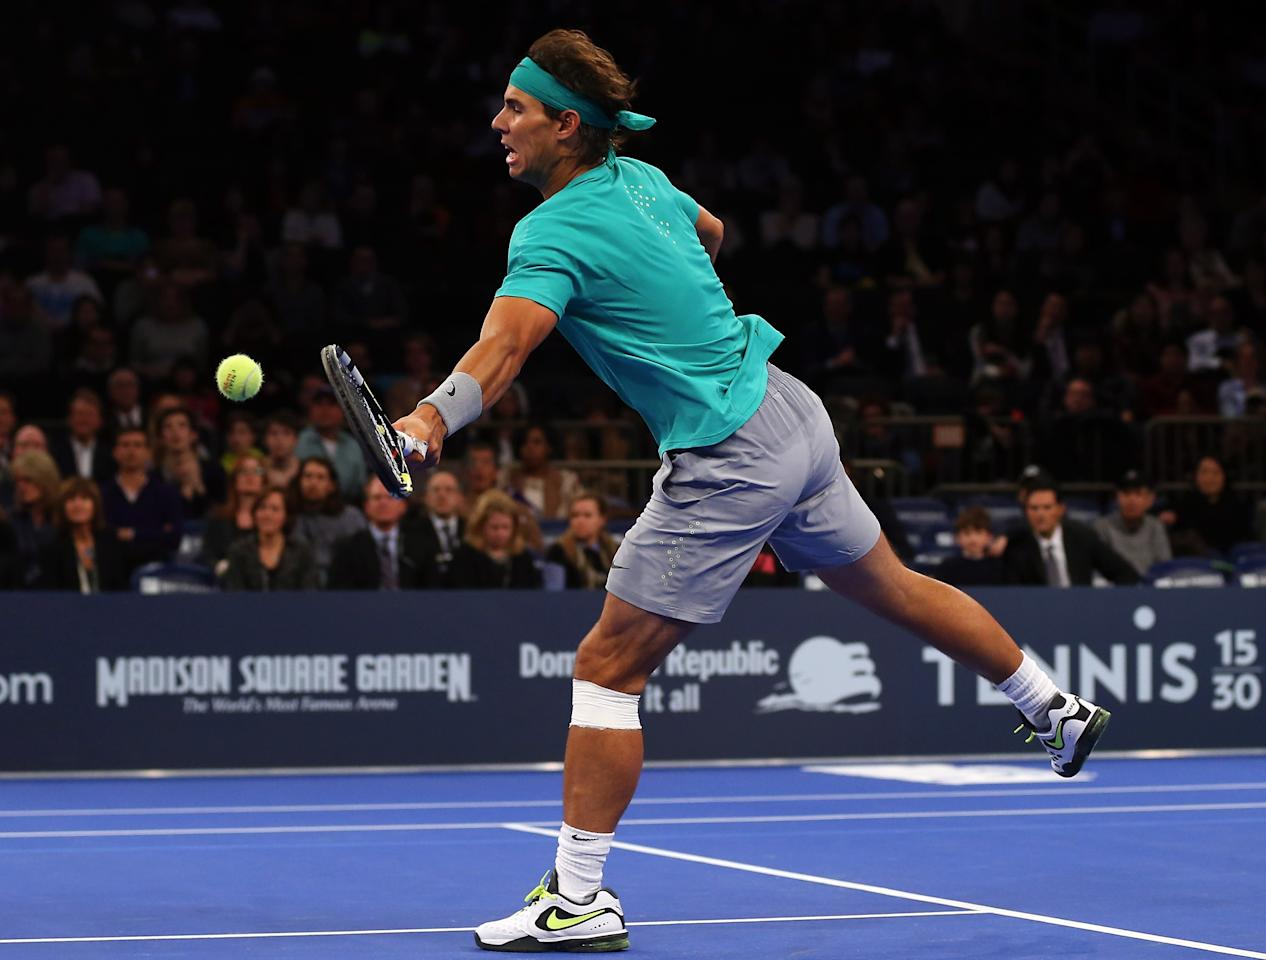 NEW YORK, NY - MARCH 04:  Rafael Nadal of Spain returns a shot to Juan del Potro of Argentina during the BNP Paribas Showdown on March 4, 2013 at Madison Square Garden in New York City.  (Photo by Elsa/Getty Images)